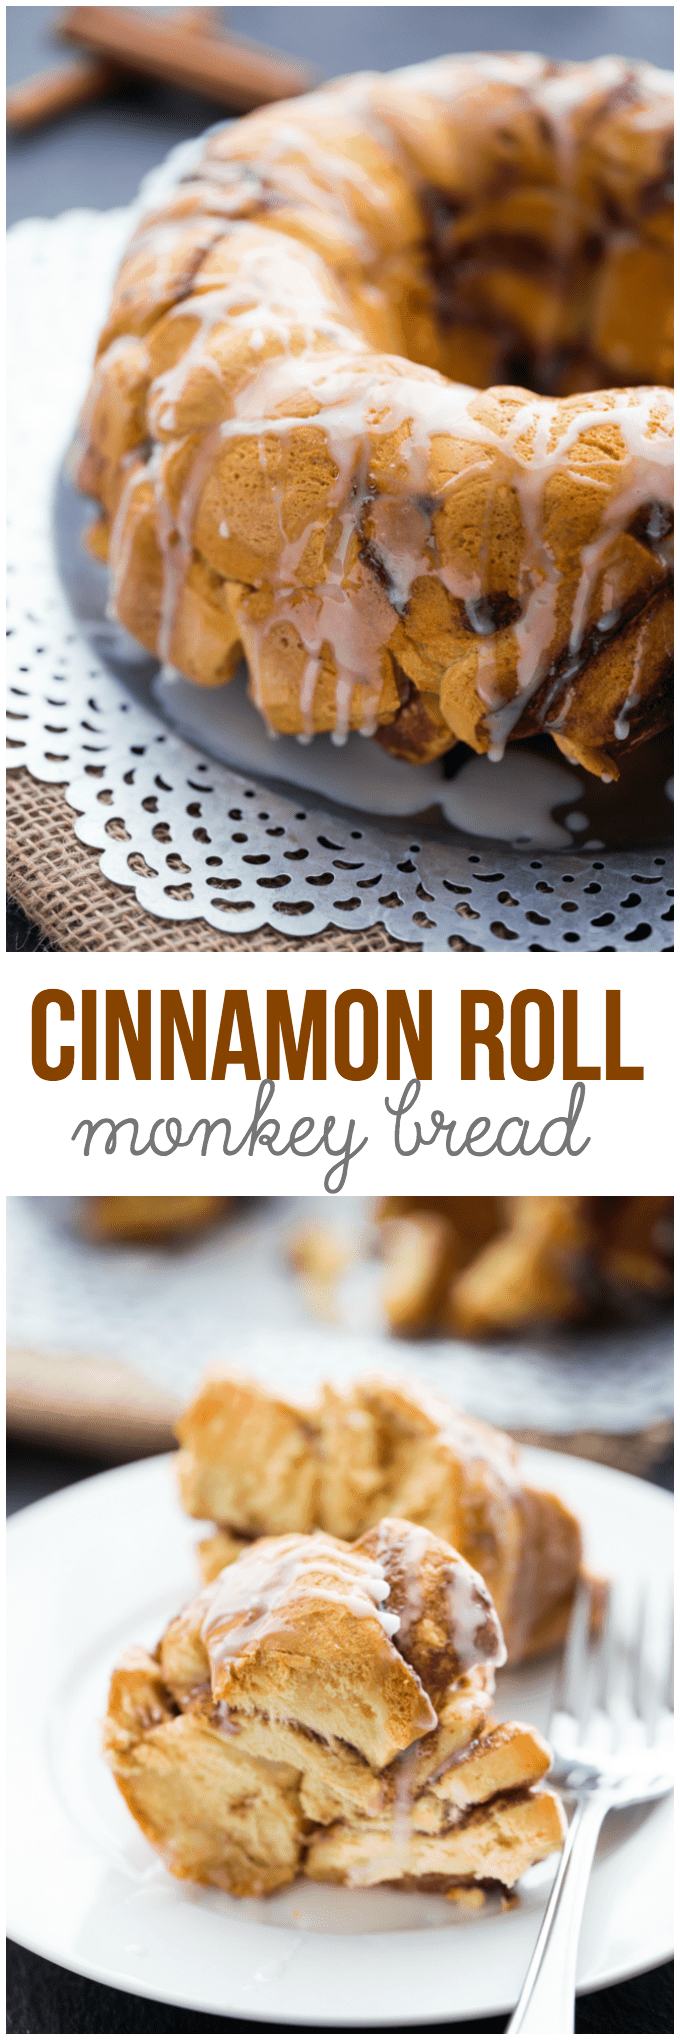 Cinnamon Roll Monkey Bread - You'll love this easy dessert hack! Instead of making cinnamon rolls, give this scrumptious monkey bread recipe a try.